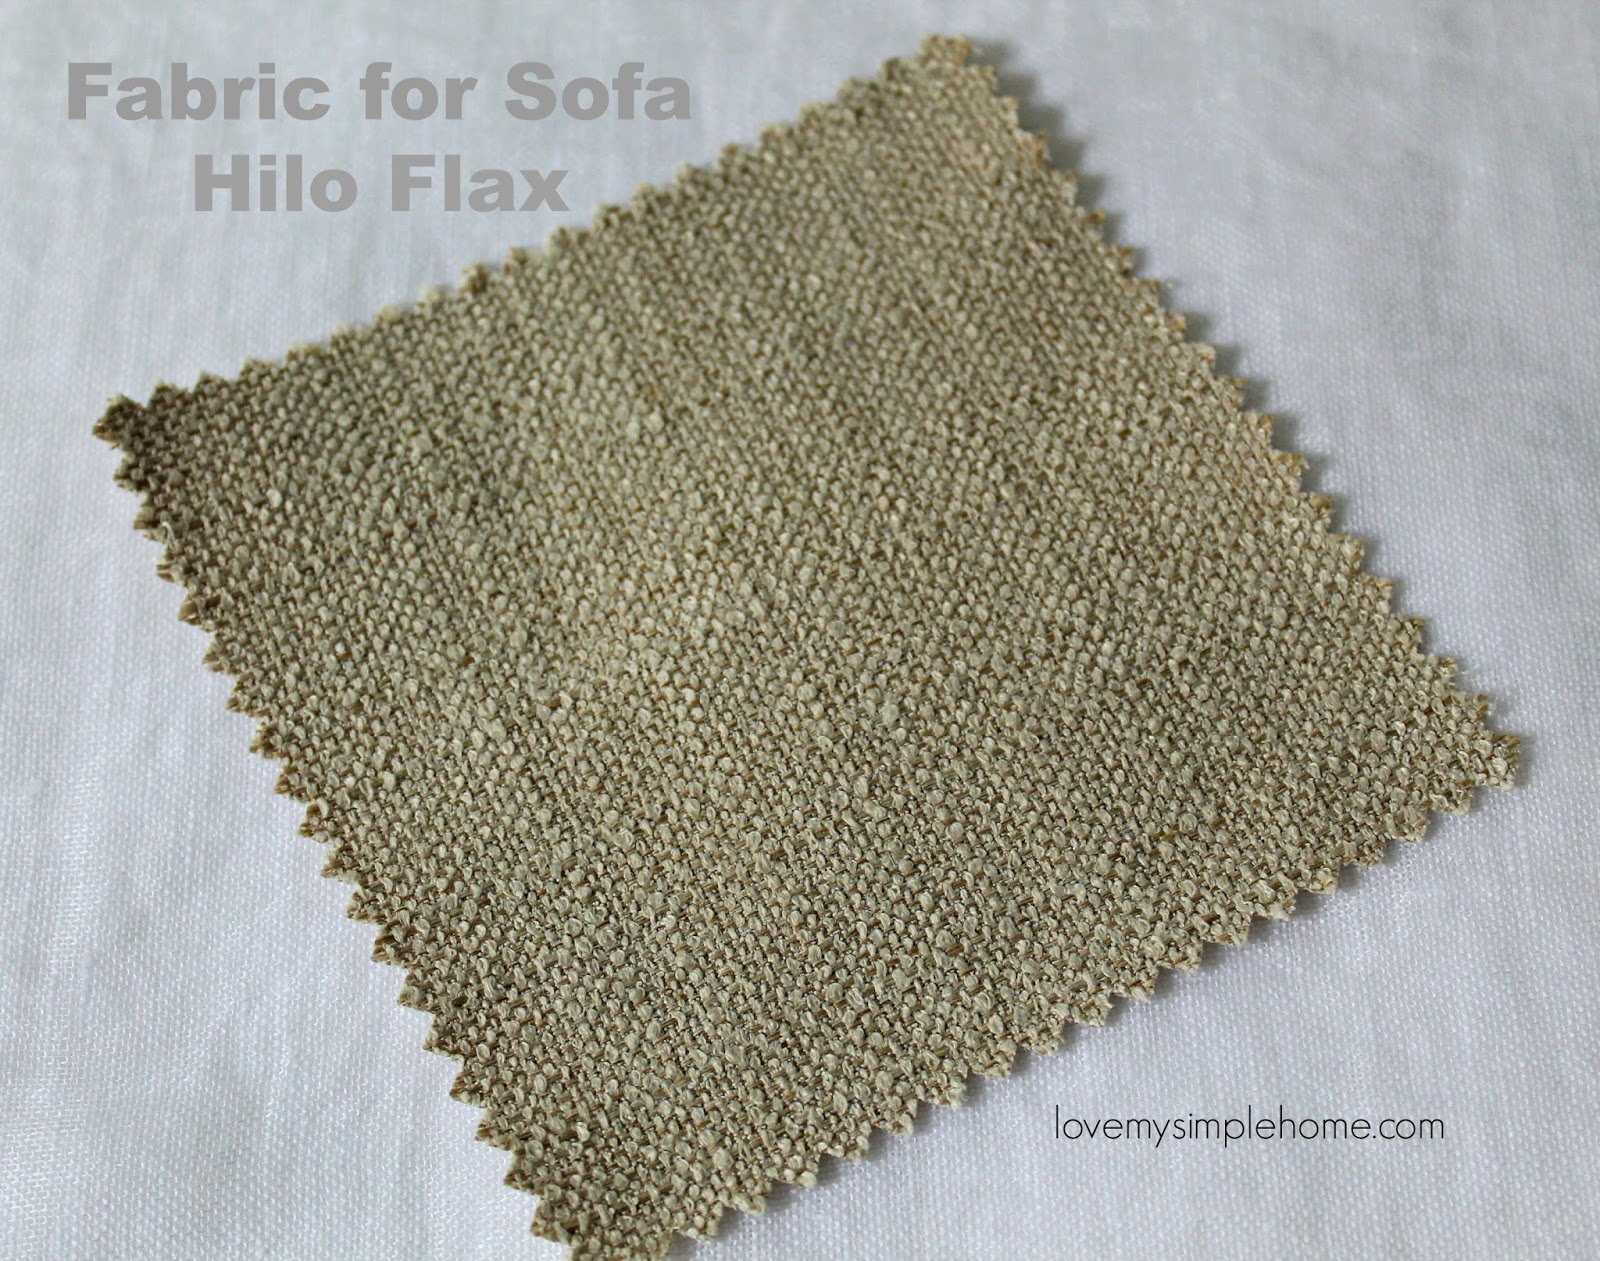 most durable upholstery fabric for sofa nalini queen sleeper reviews one room challenge week 5 choices and a setback